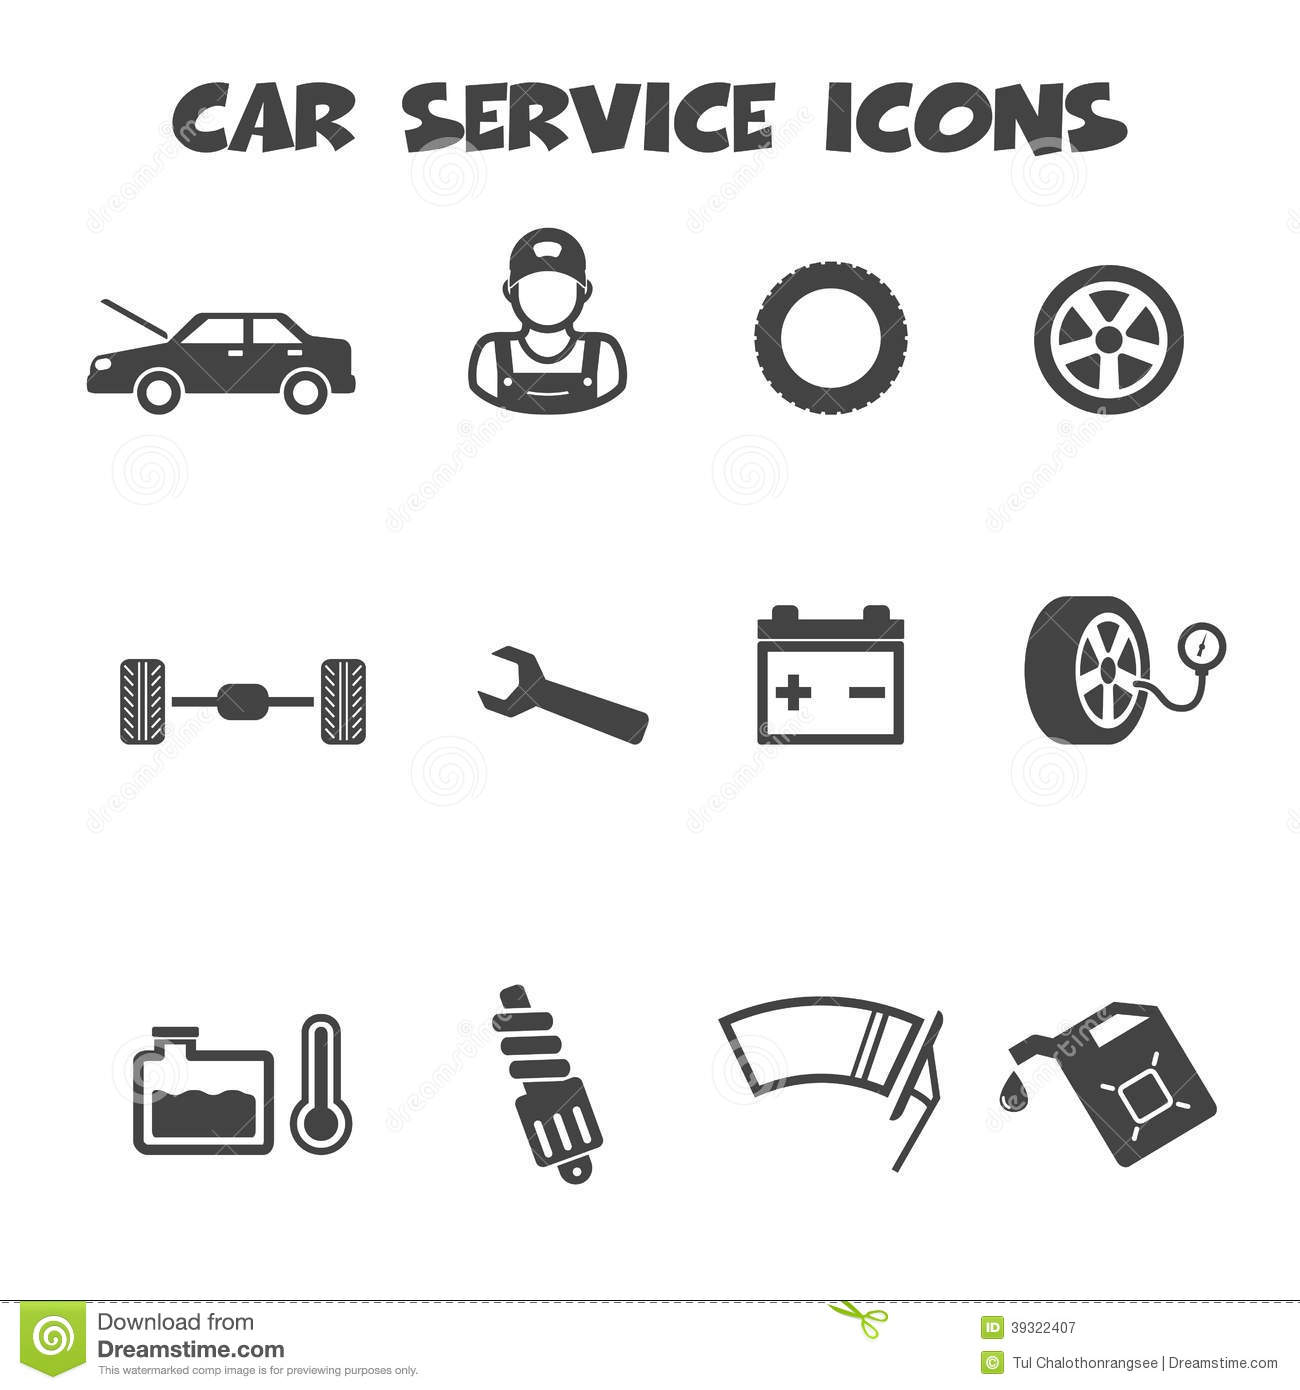 Car Service Icons Stock Vector Illustration Of Maintenance 39322407